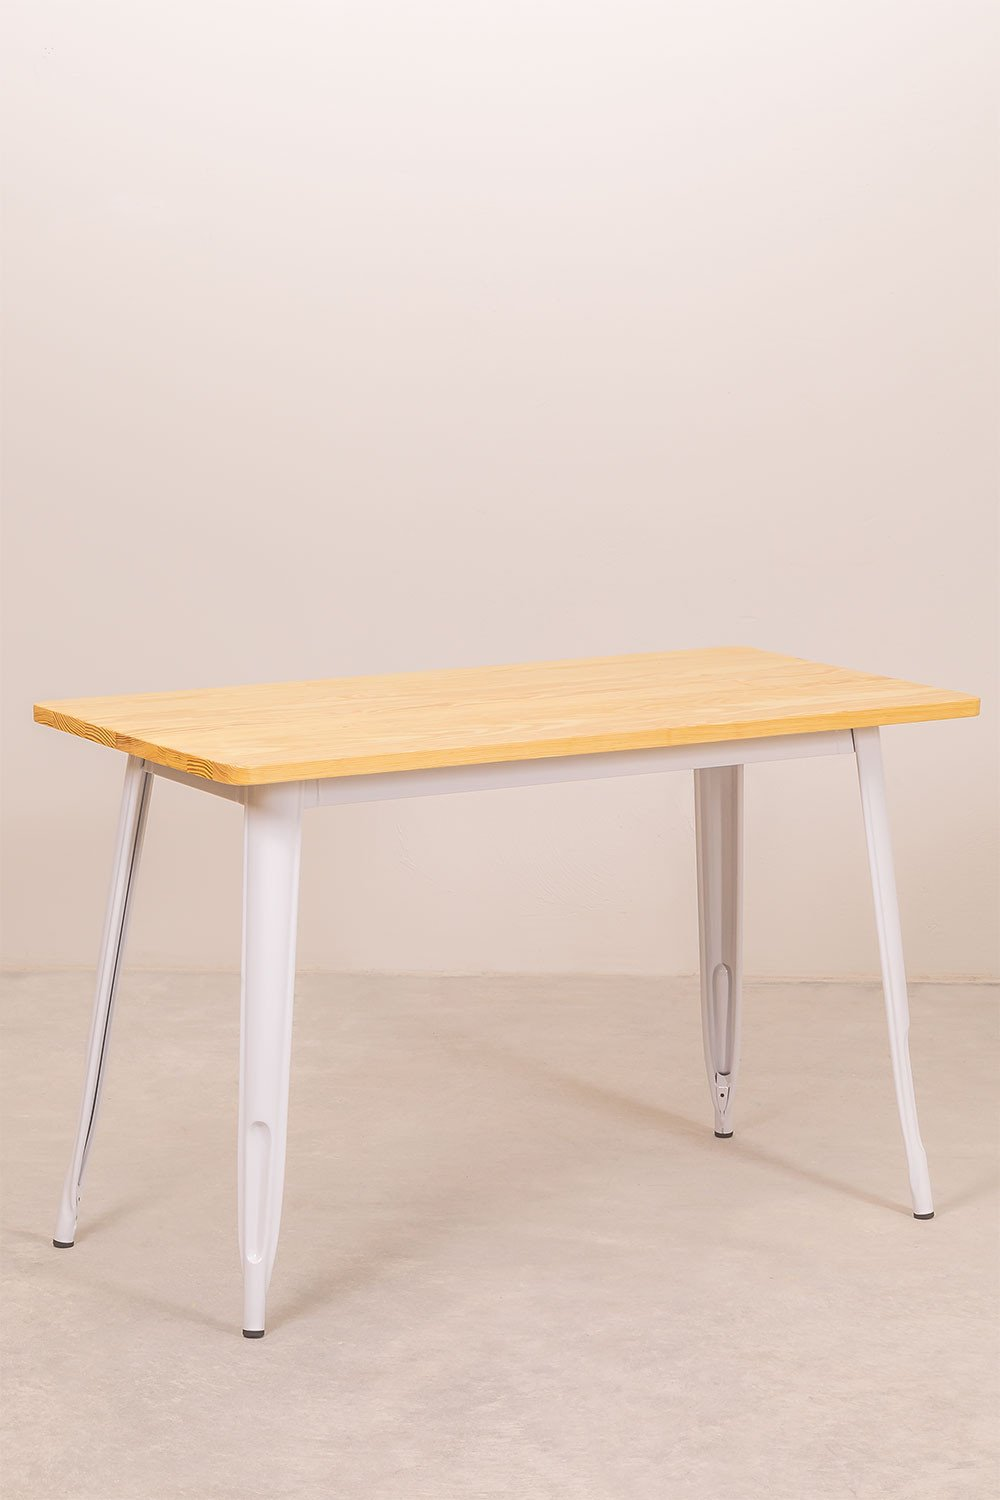 Rectangular Dining Table in Wood and Steel (120x60 cm) LIX, gallery image 1